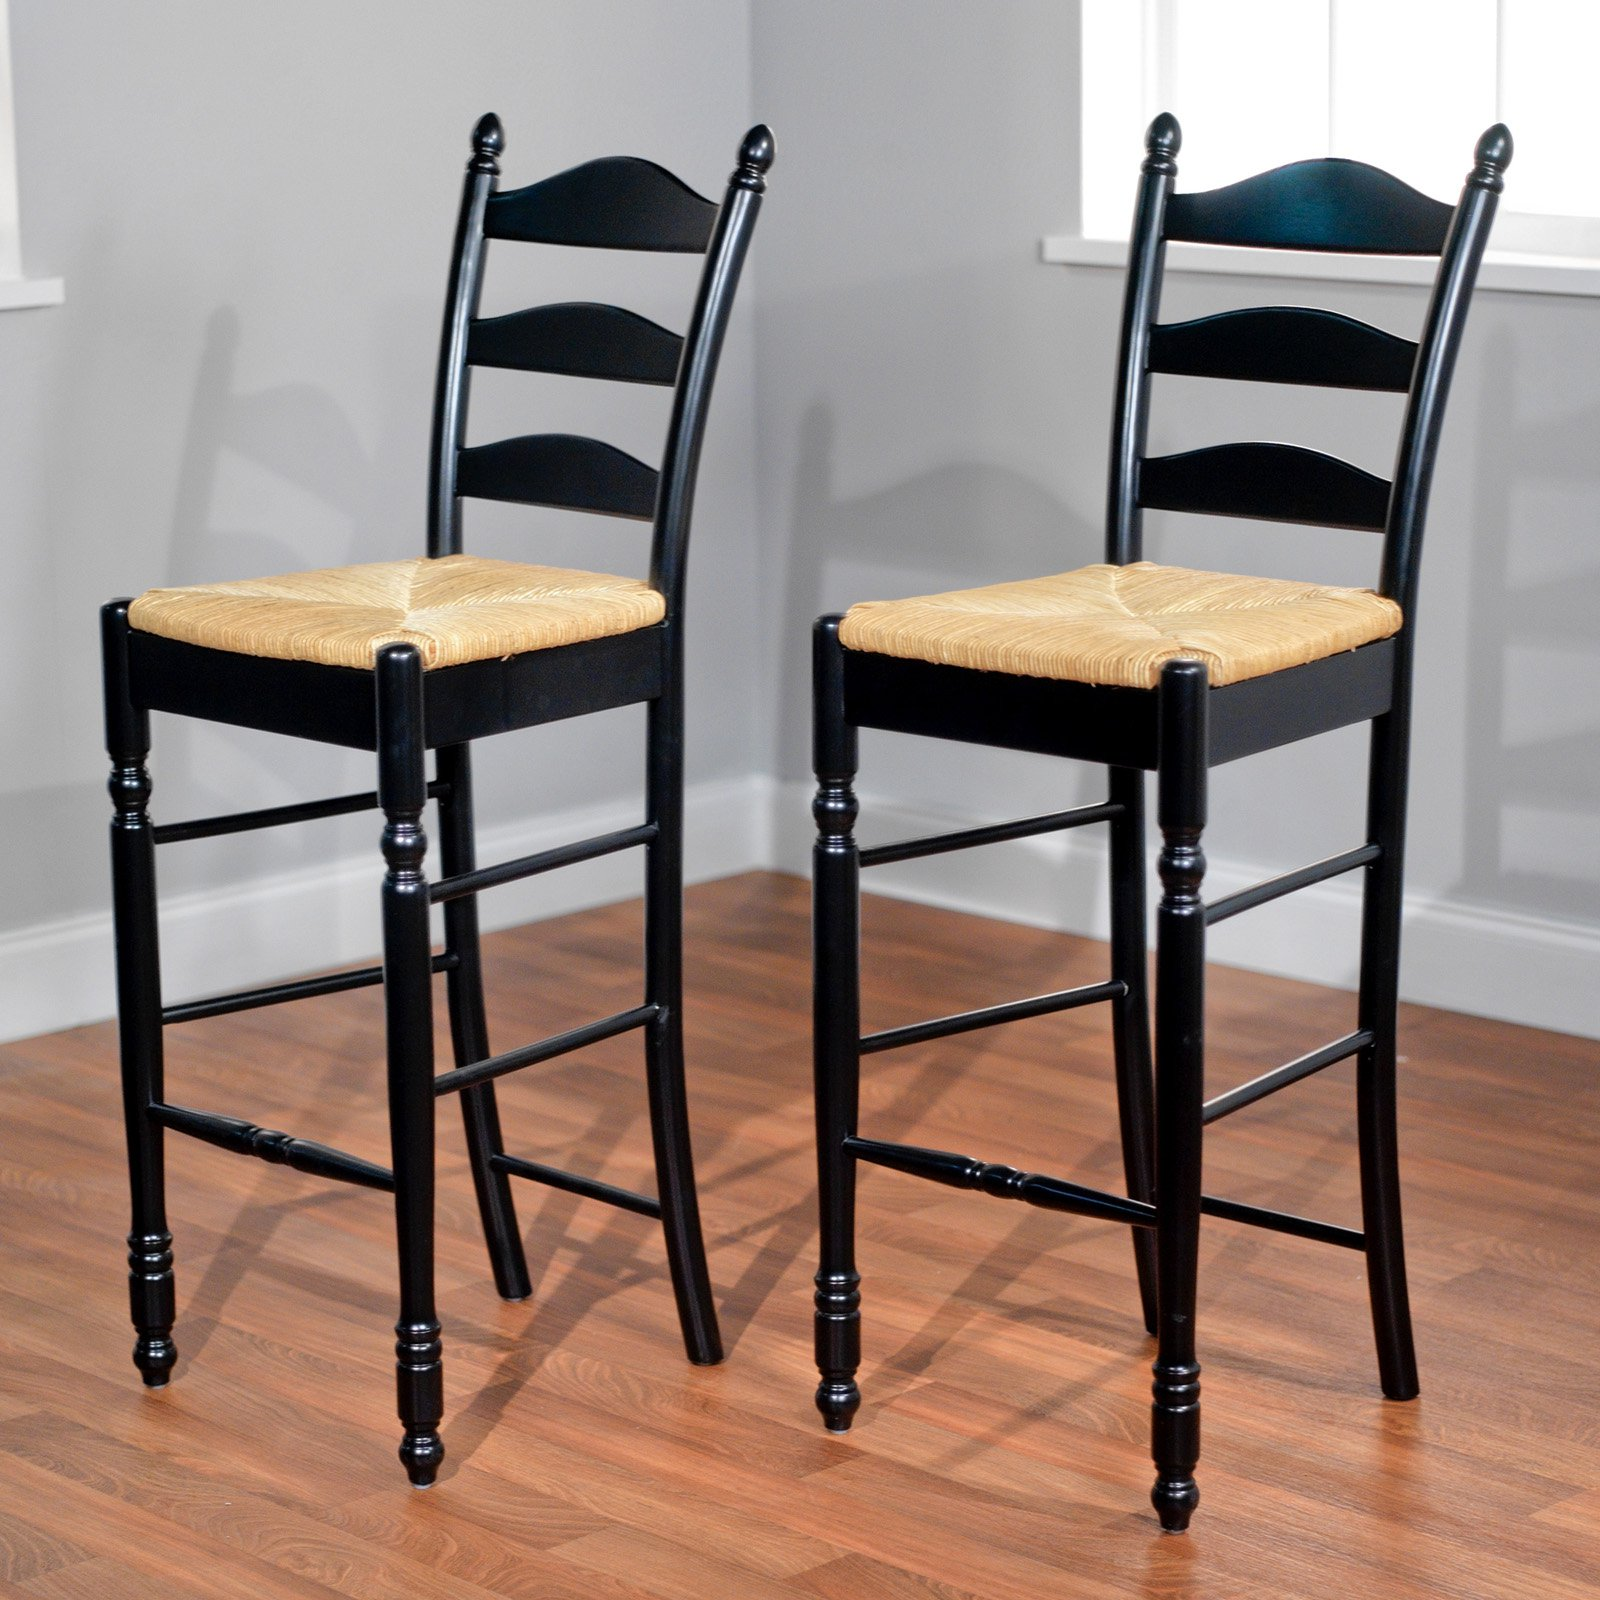 Target Marketing Systems 30 in. Ladder Back Bar Stool - Set of 2